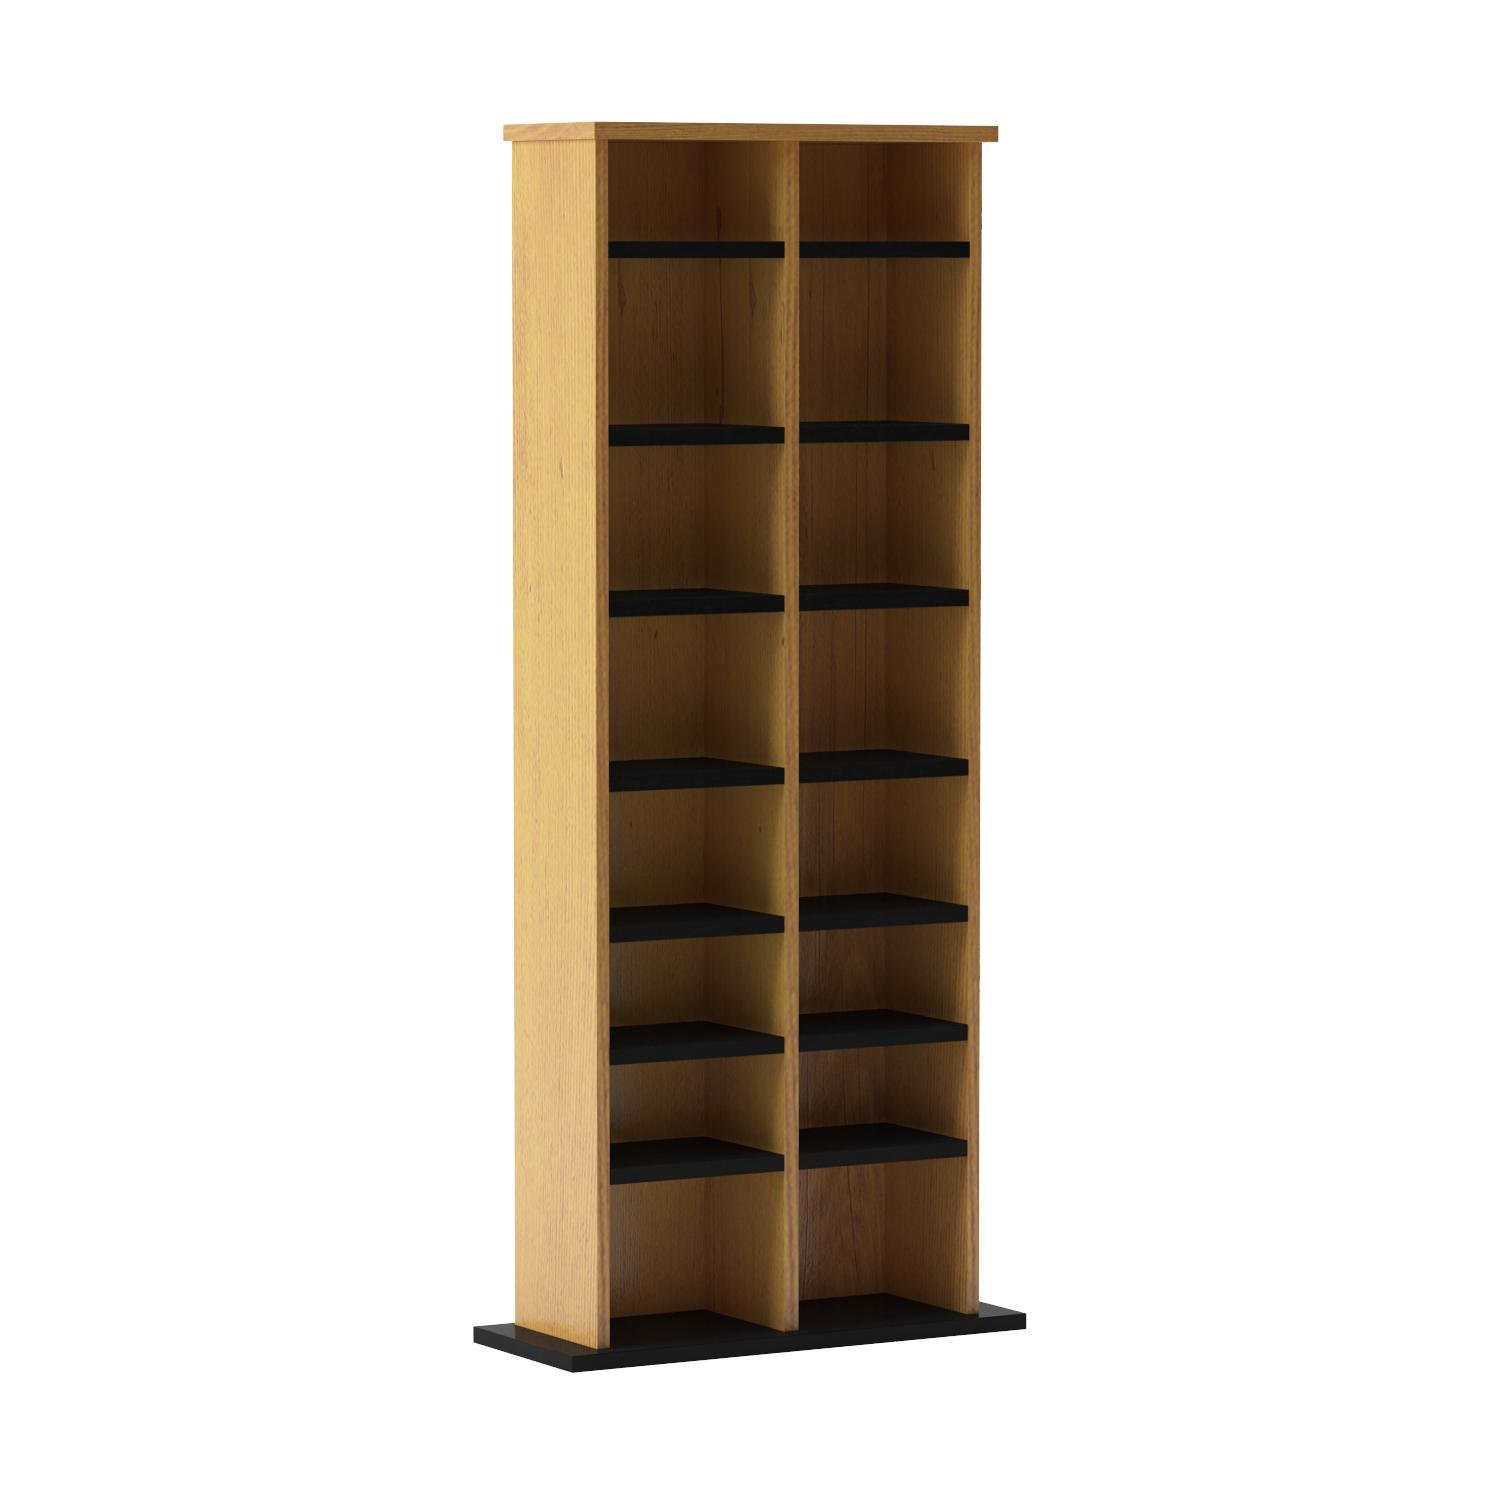 Prepac Double Multimedia Tower Storage Cabinet, Oak and Black